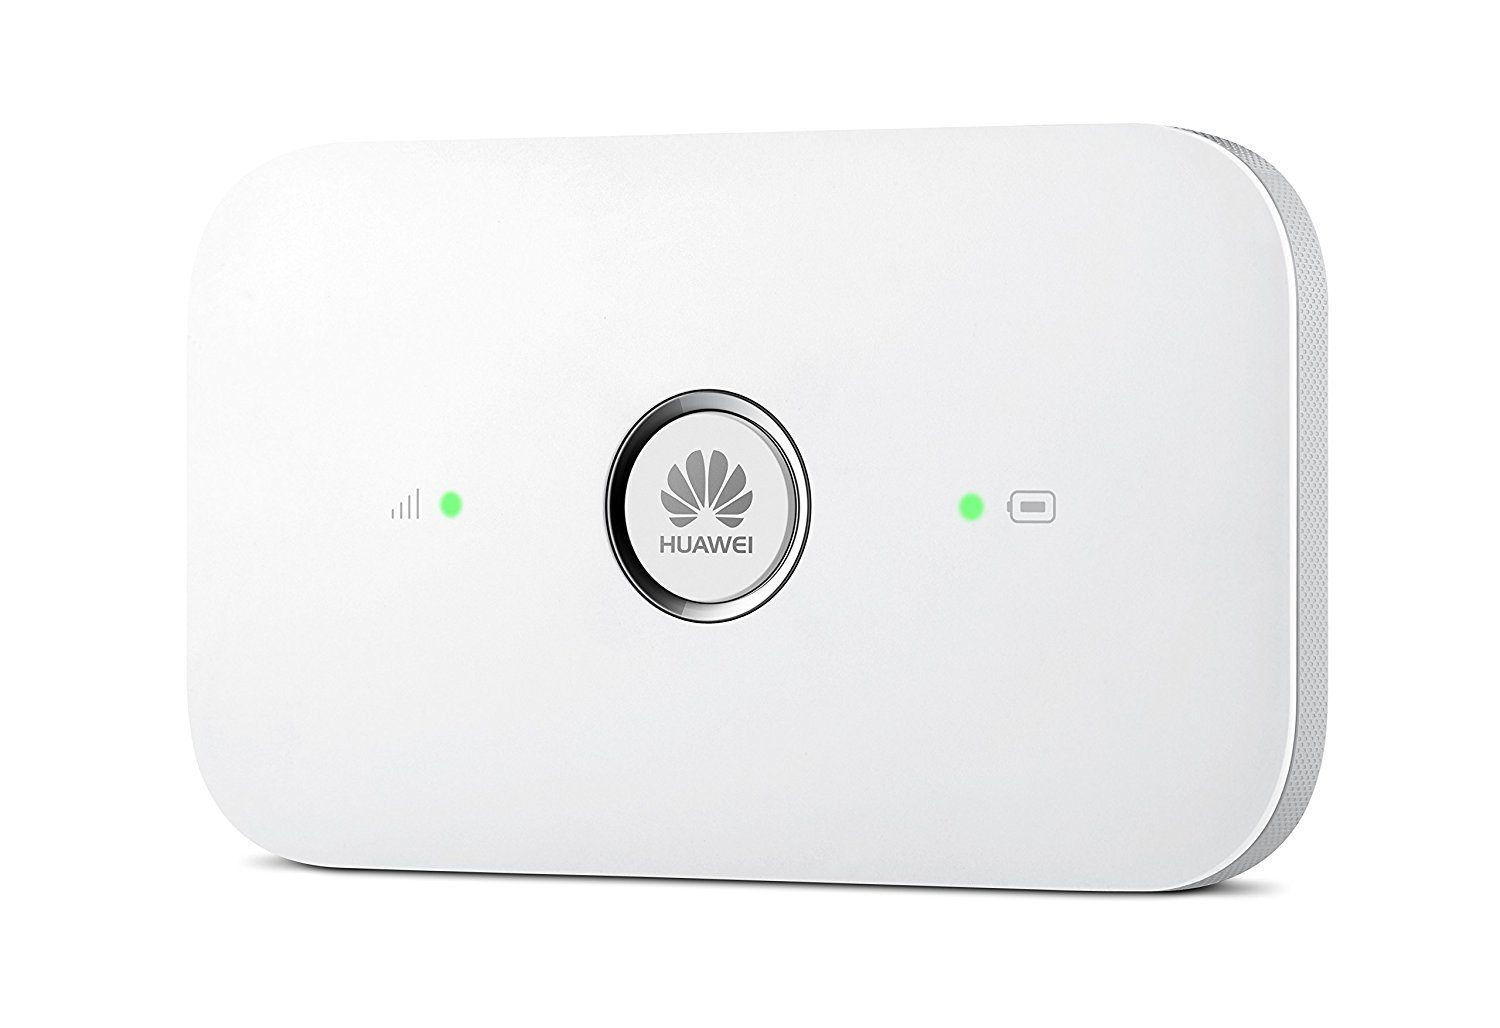 Huawei E5573Cs Unlocked 4G LTE 150 Mbps & 3G 50 Mpbs Mobile WiFi (4G LTE in Europe, Asia, Middle East, Africa and partial LATAM)